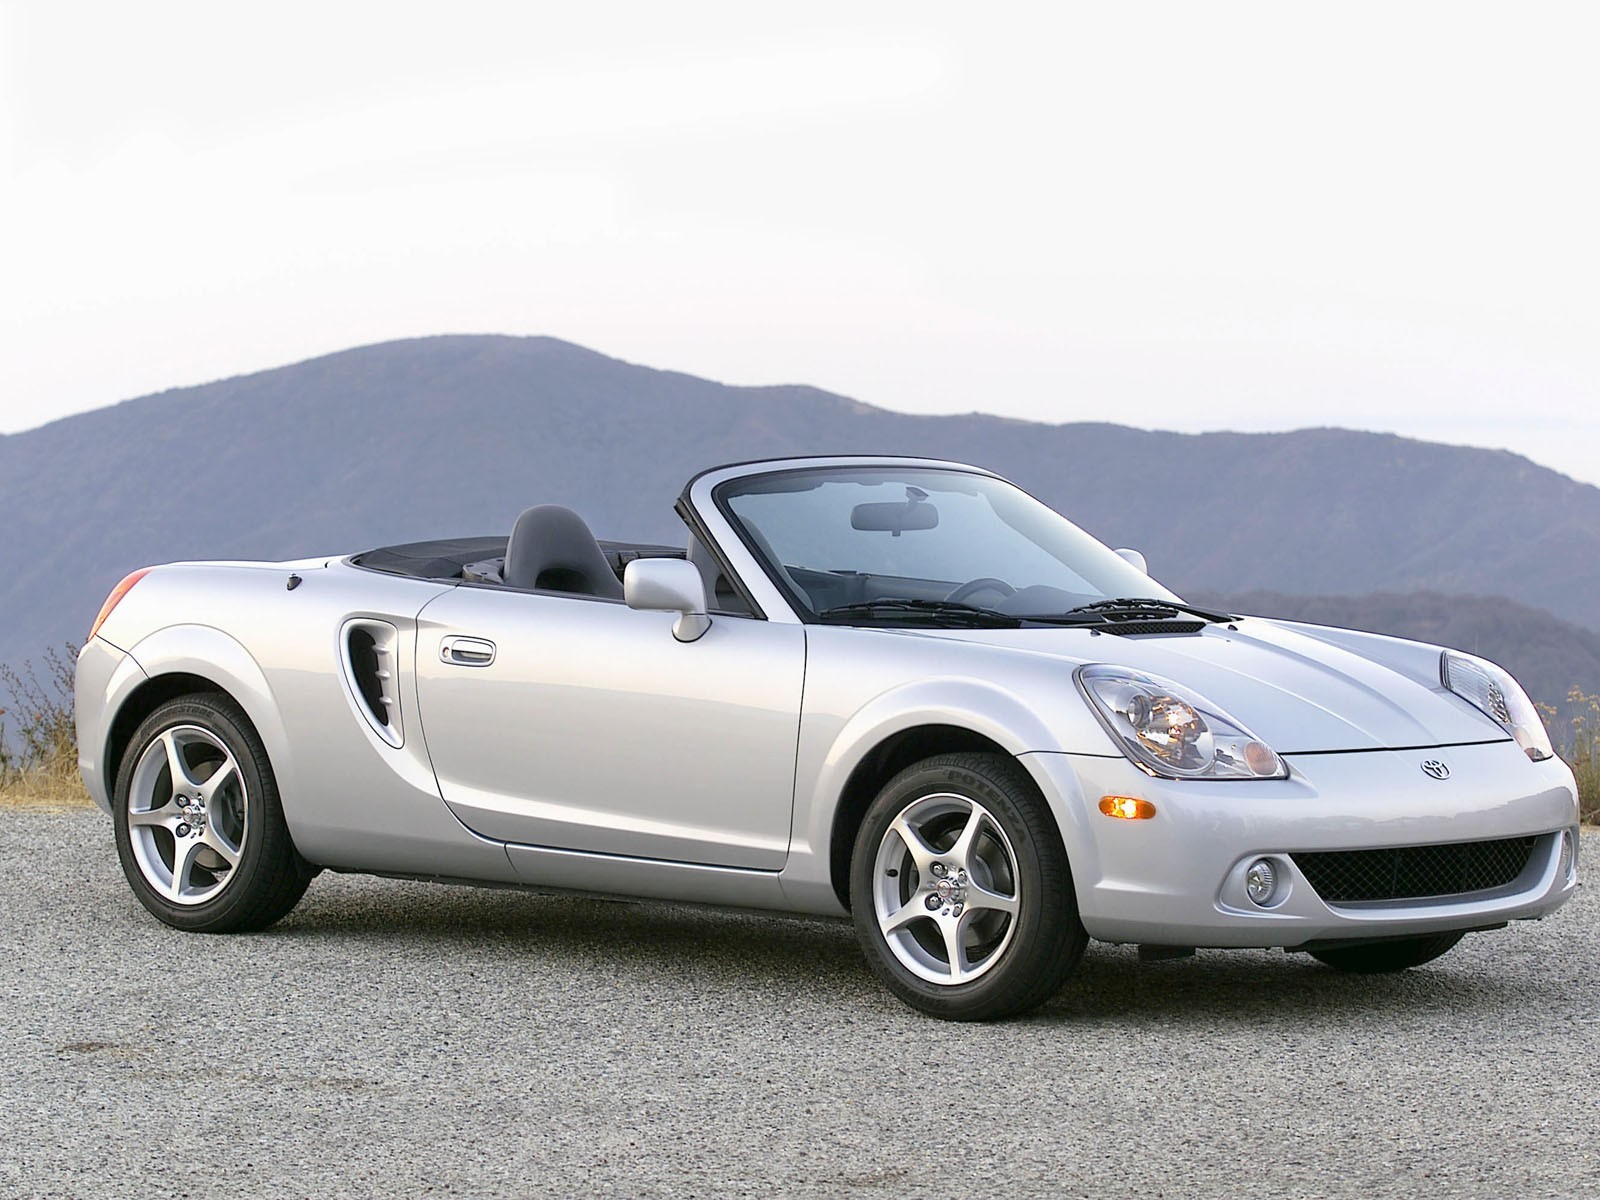 Toyota MR-S Convertible 2002